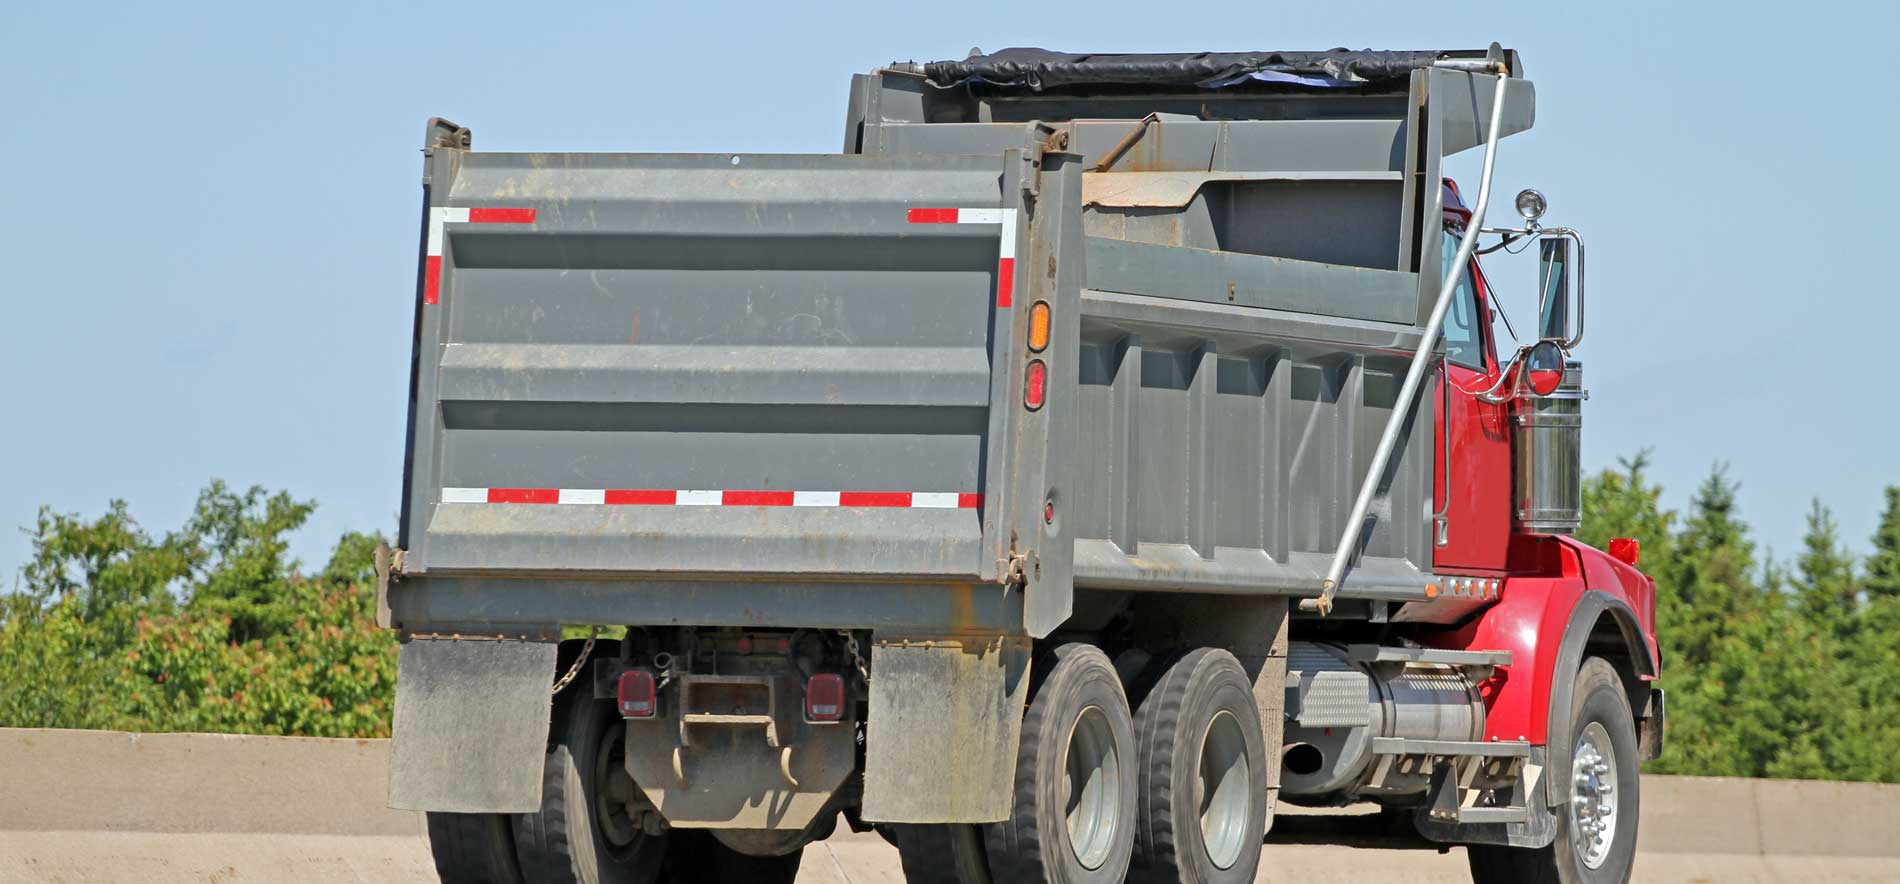 Home Air Weigh Mack Dump Truck Trailer Wiring Diagram Straight On Board Scales Support Ride And Mechanical Suspension